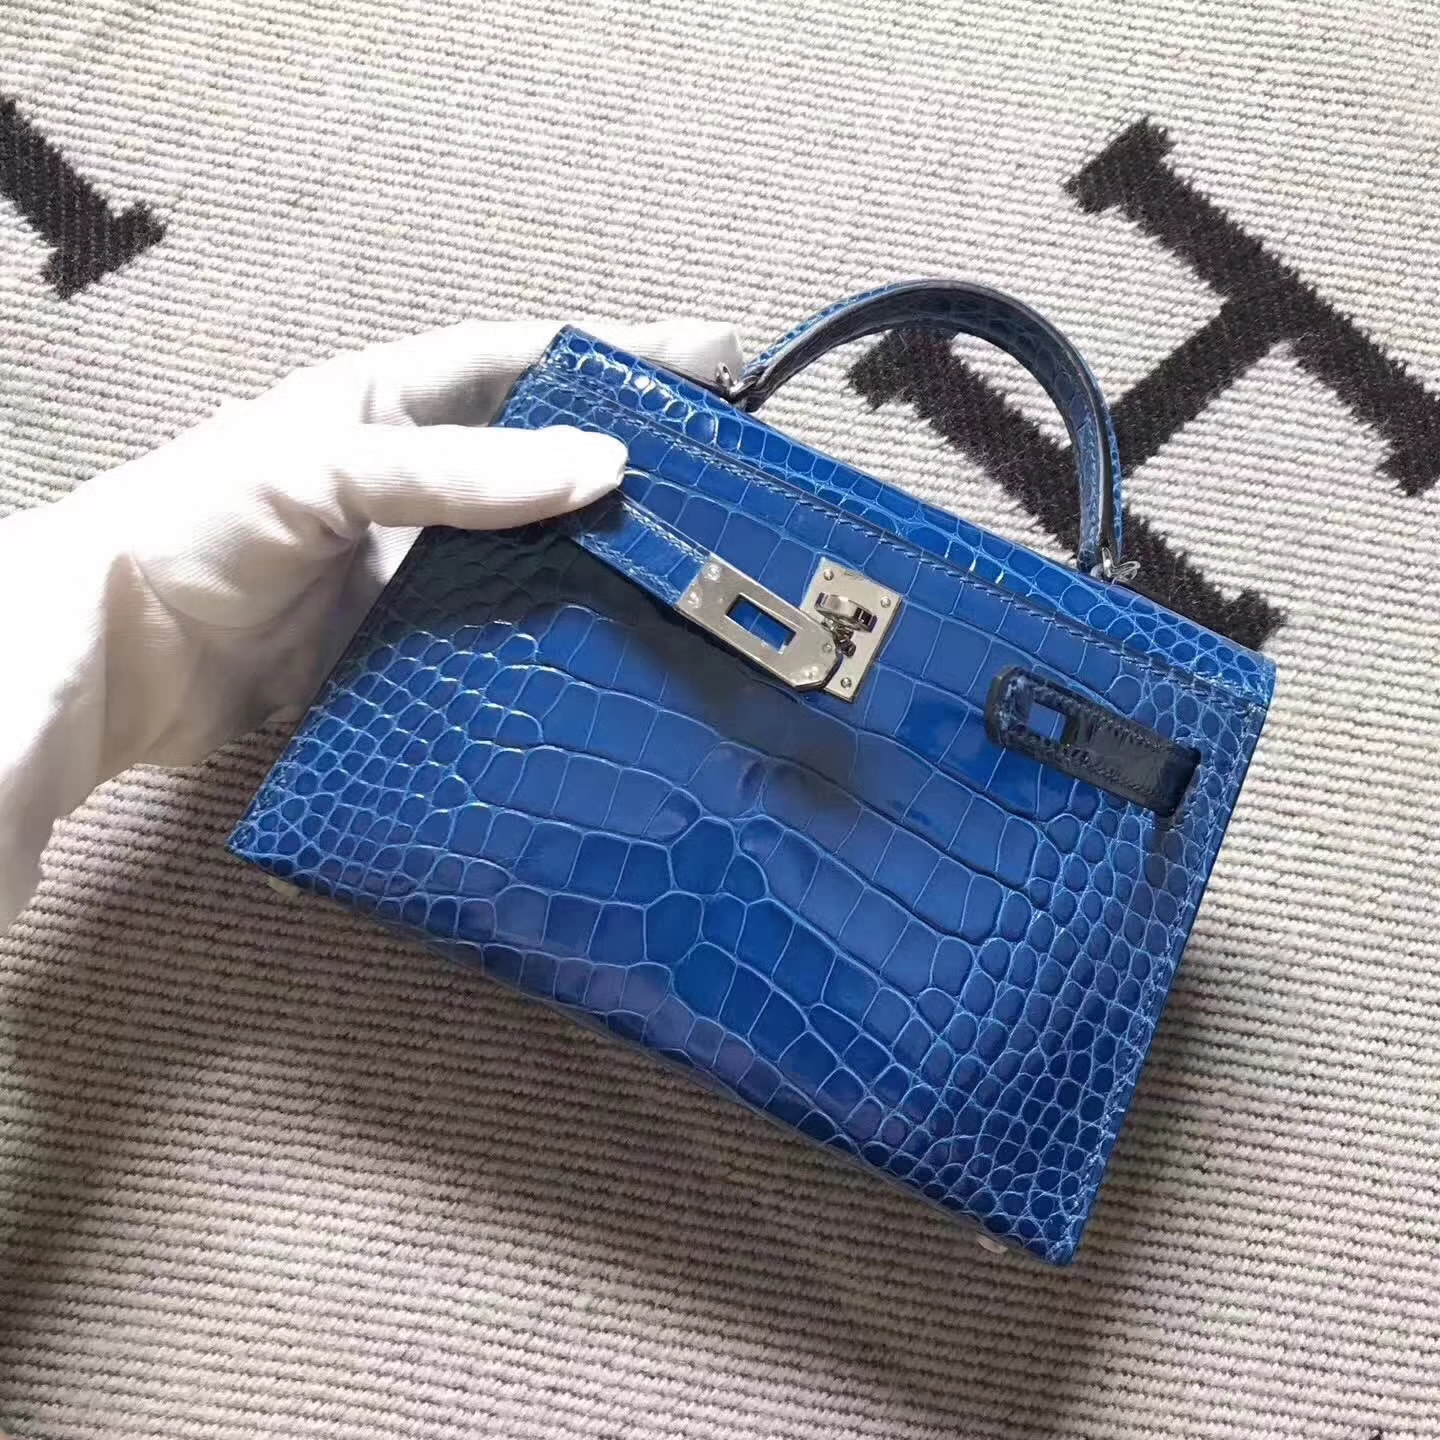 Noble Hermes Blue Crocodile Shiny Leather Minikelly-2 Clutch Bag